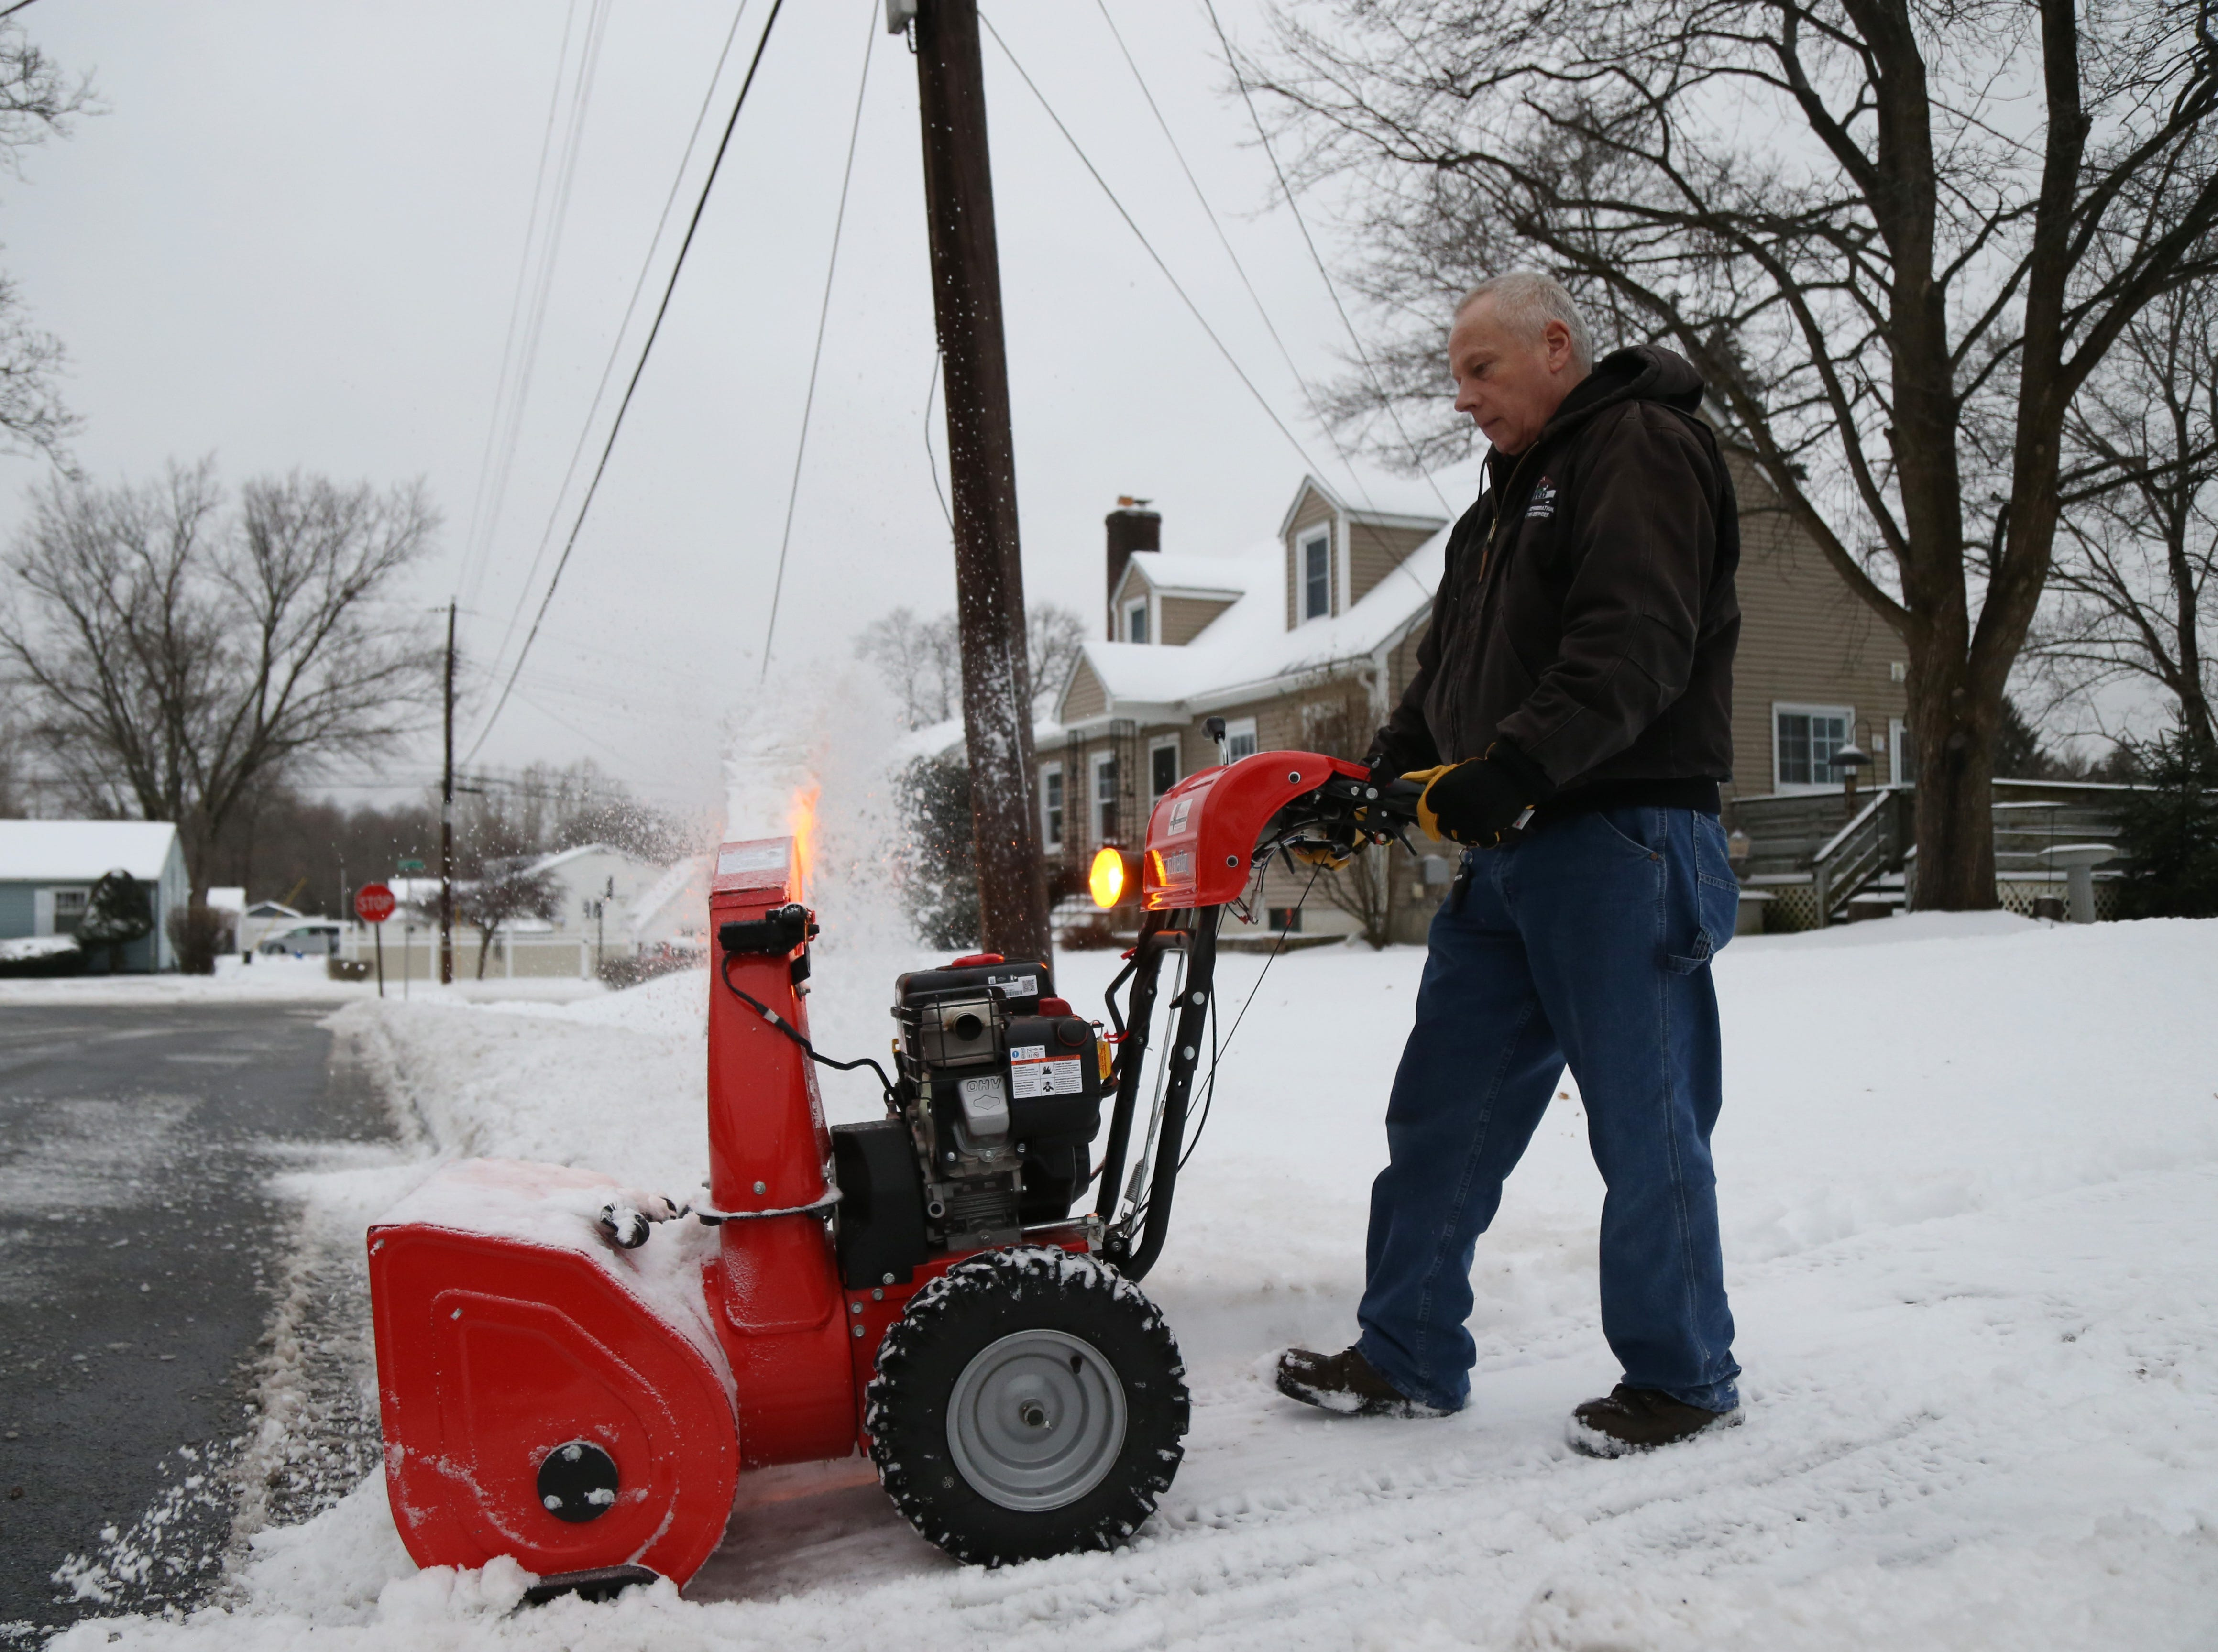 Steve Evans uses his snowblower to clear his driveway in the Village of Wappingers Falls on January 20, 2019. A winter storm brought snow and freezing rain overnight.